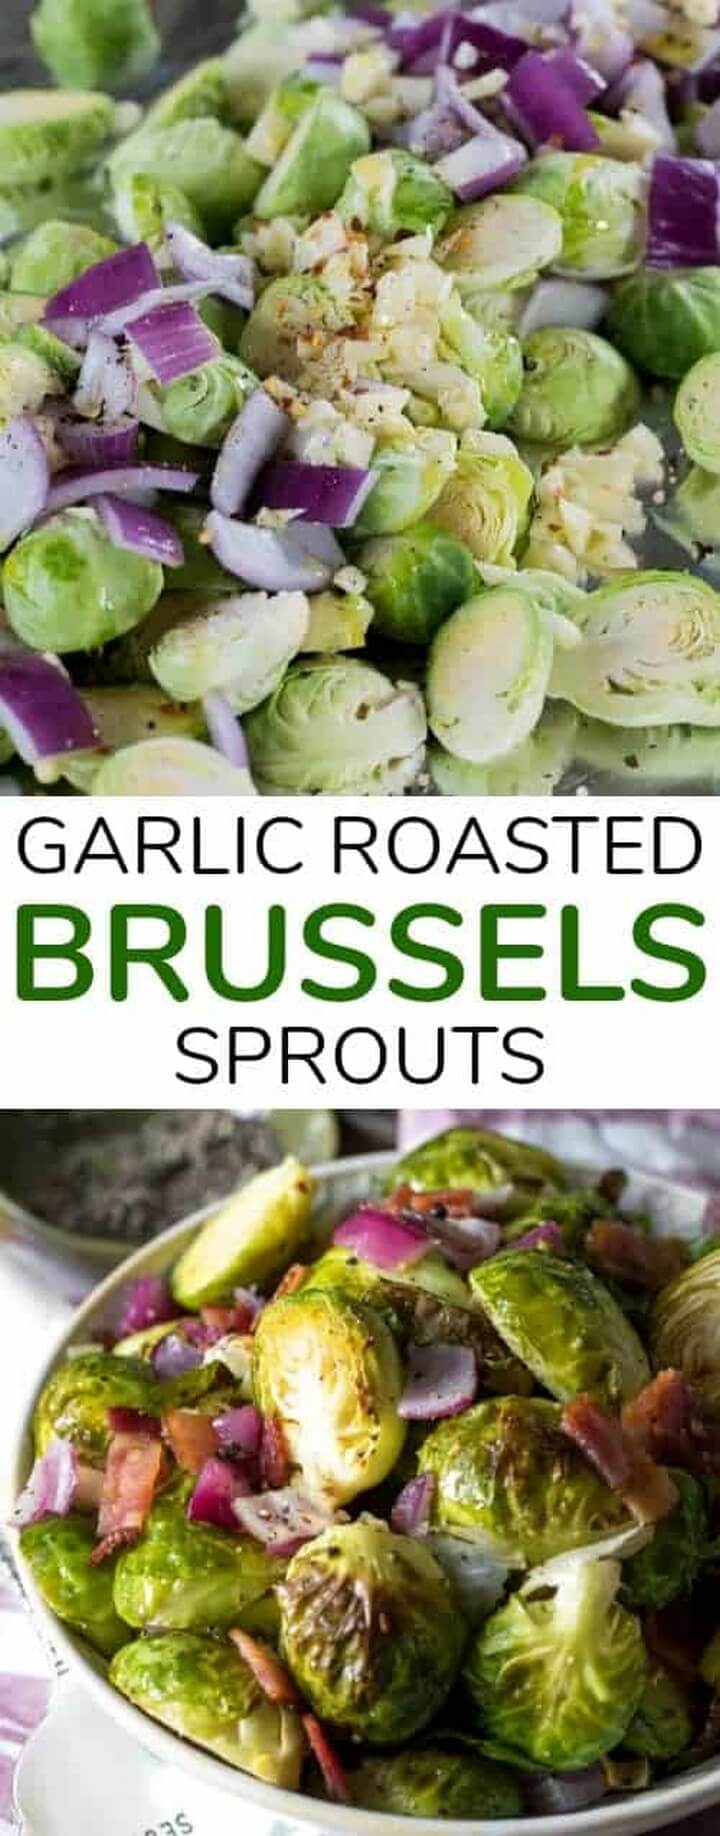 Garlic Roasted Brussels Sprouts with Bacon